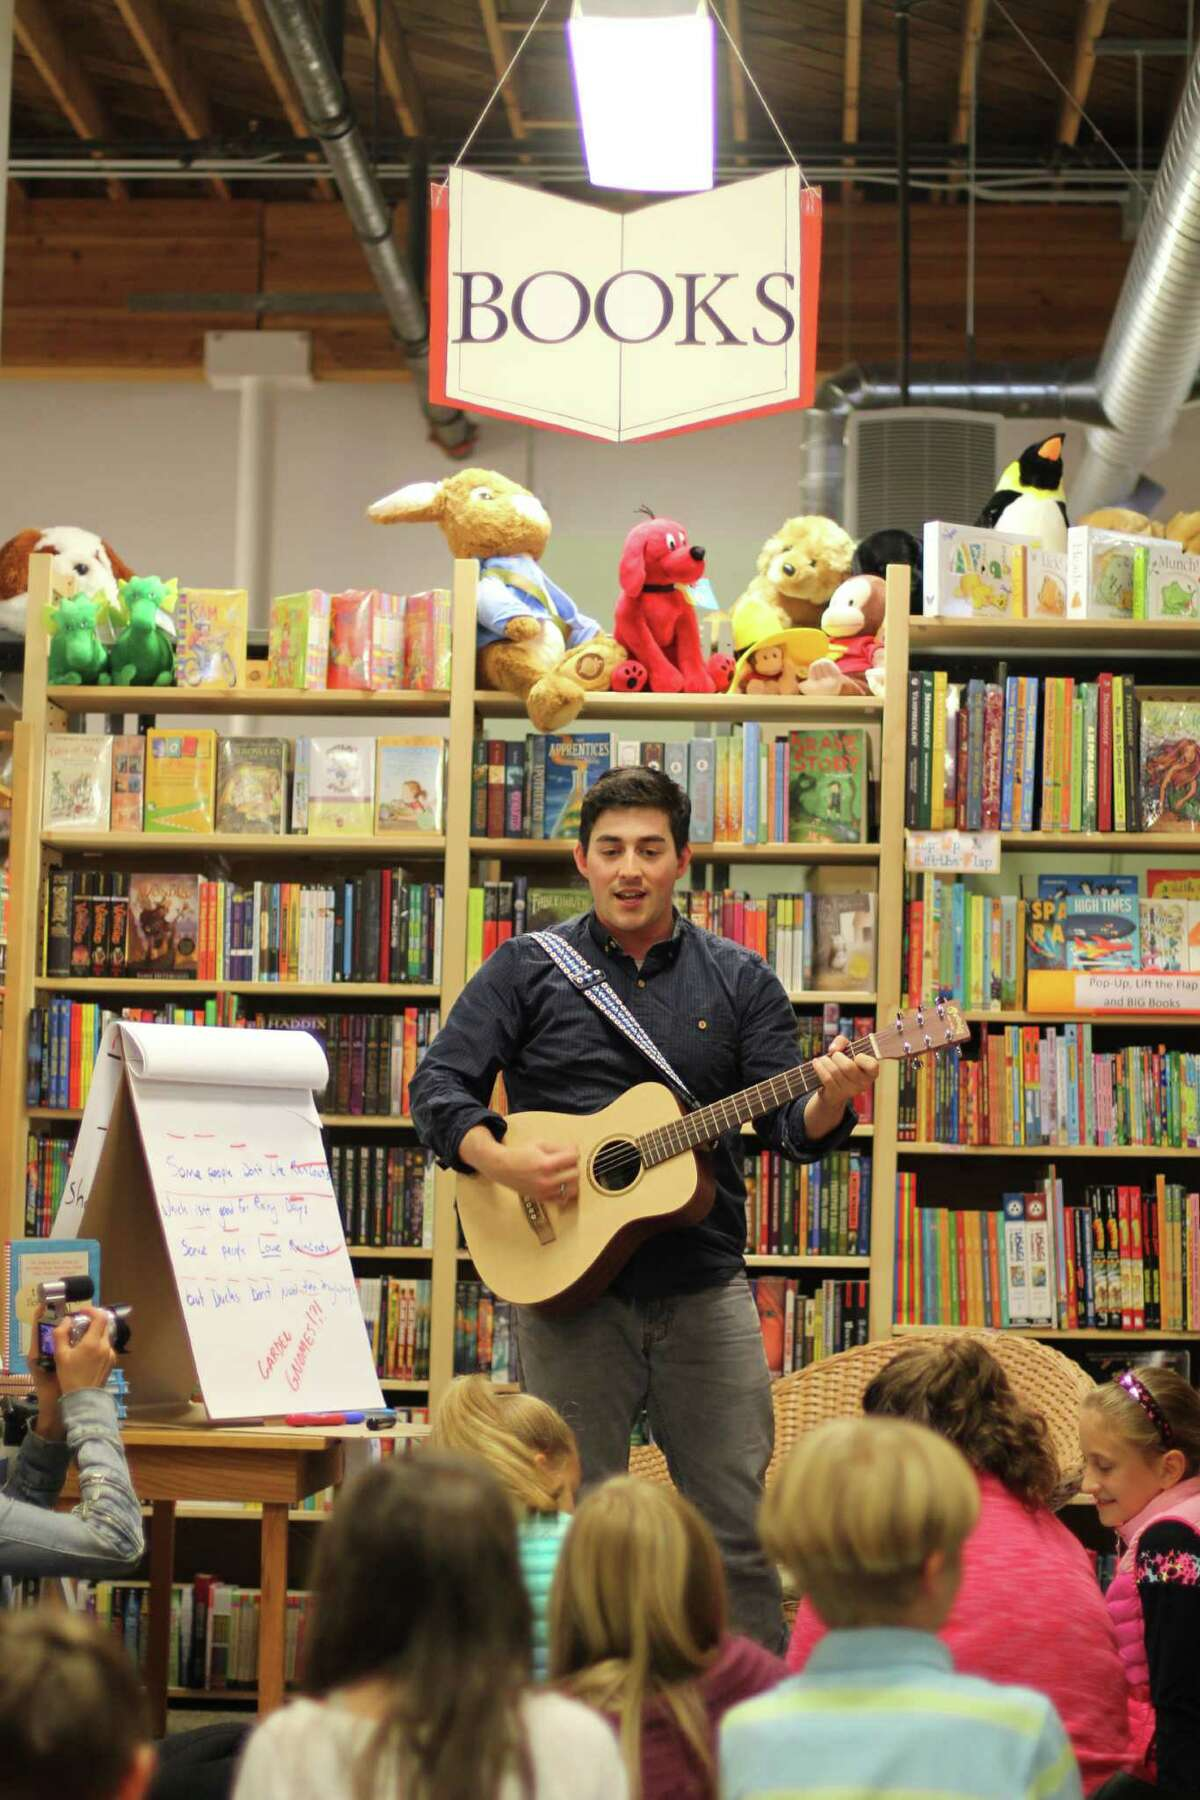 Danny Tieger performing at a book signing event for his recently-published